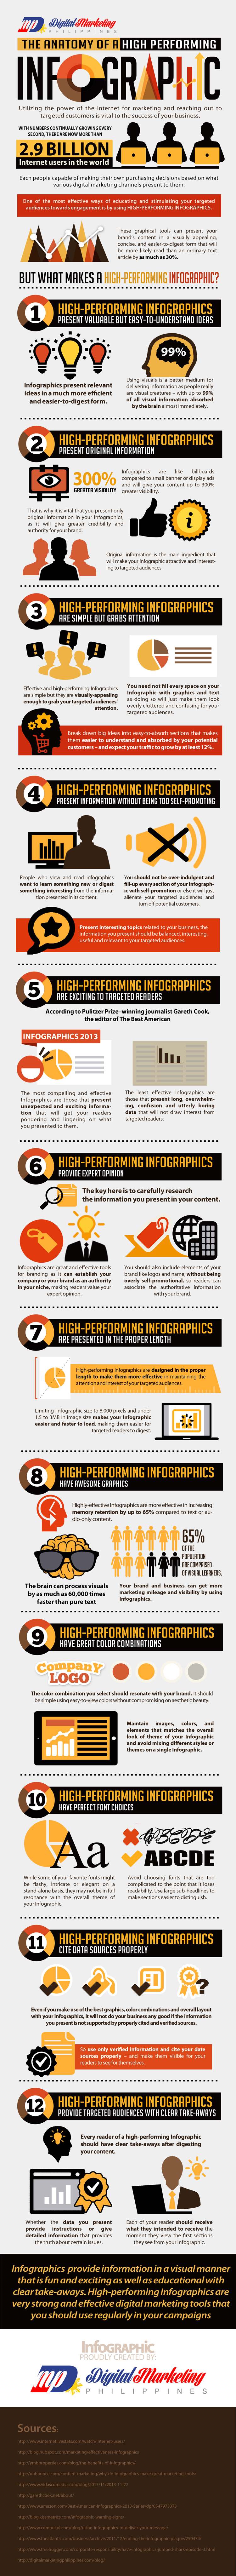 The-Anatomy-of-a-High-Performing-Infographic